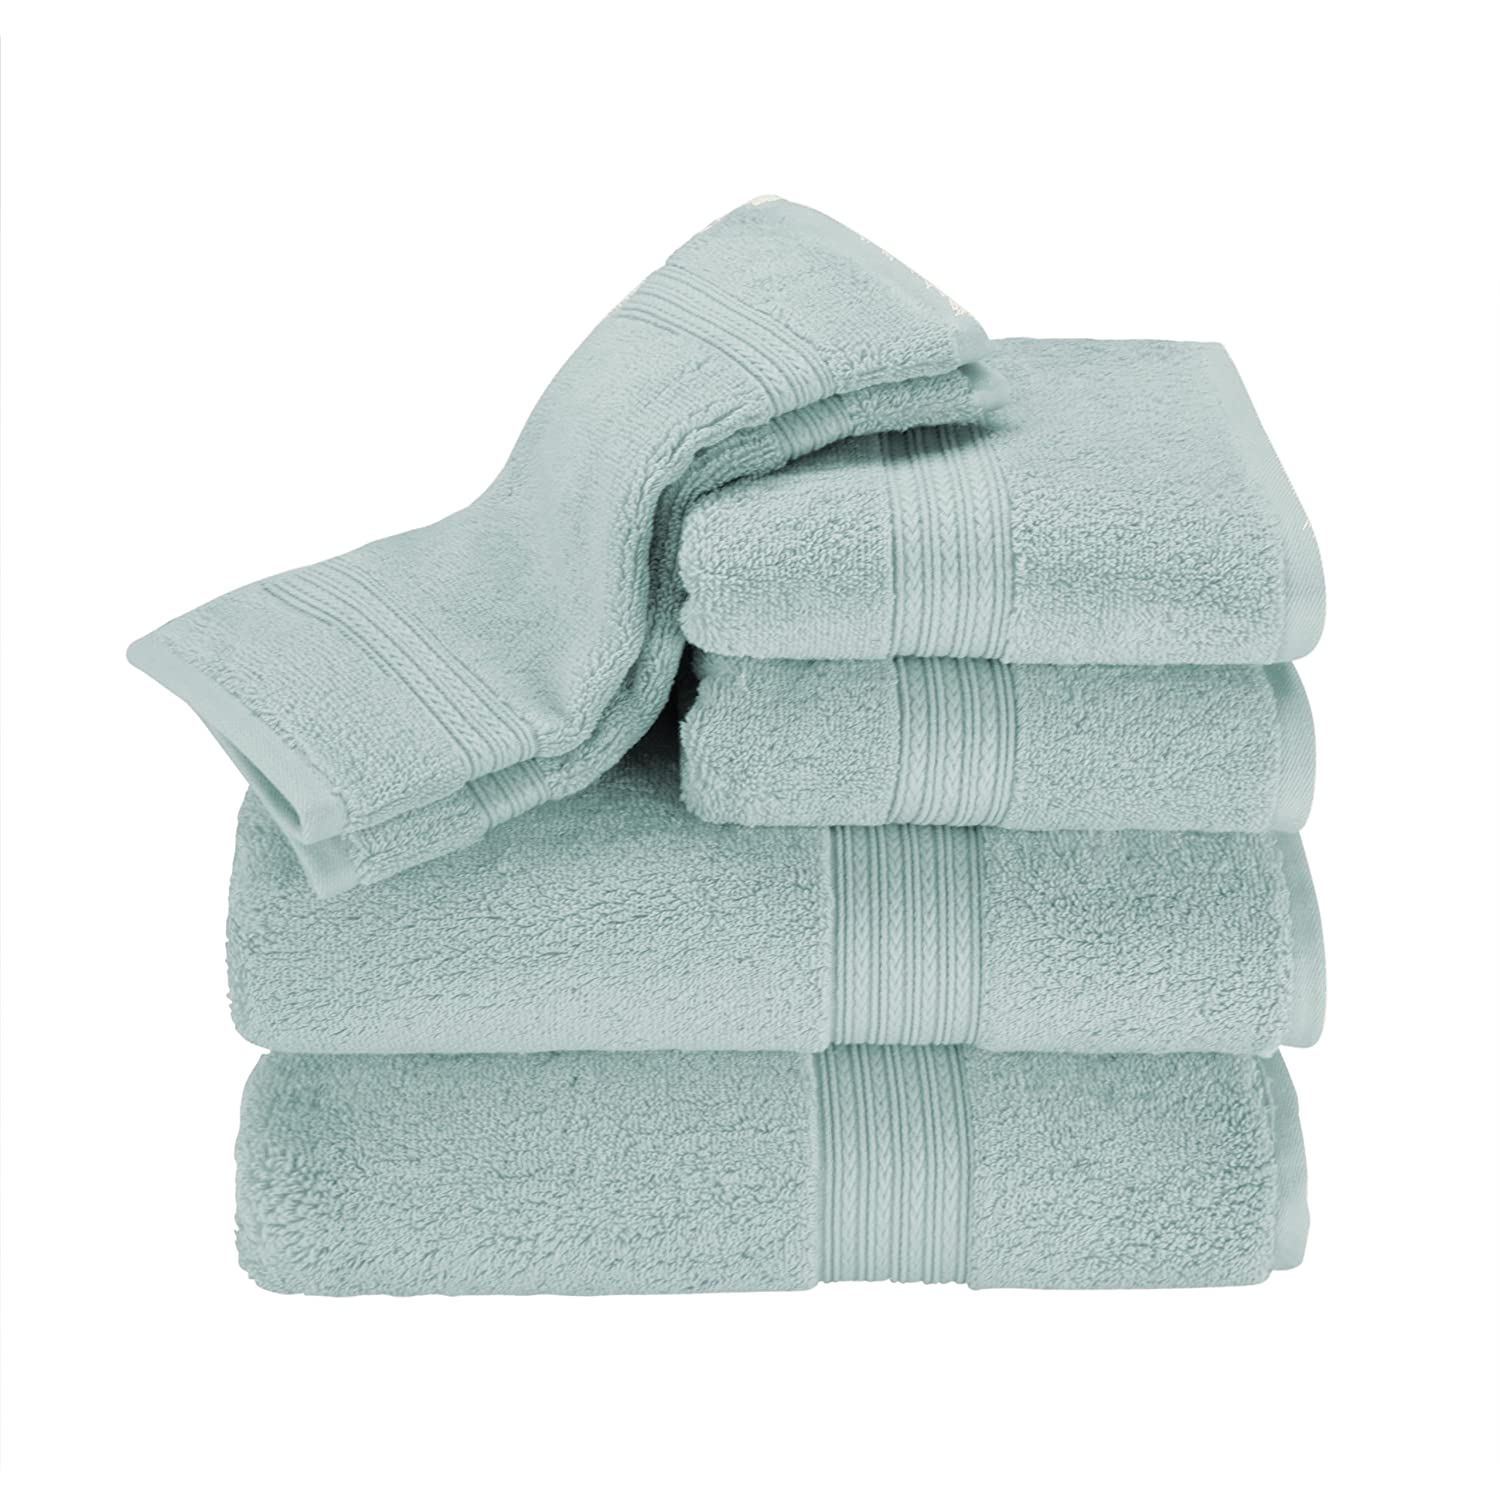 Robin's Egg Blue Towel Set